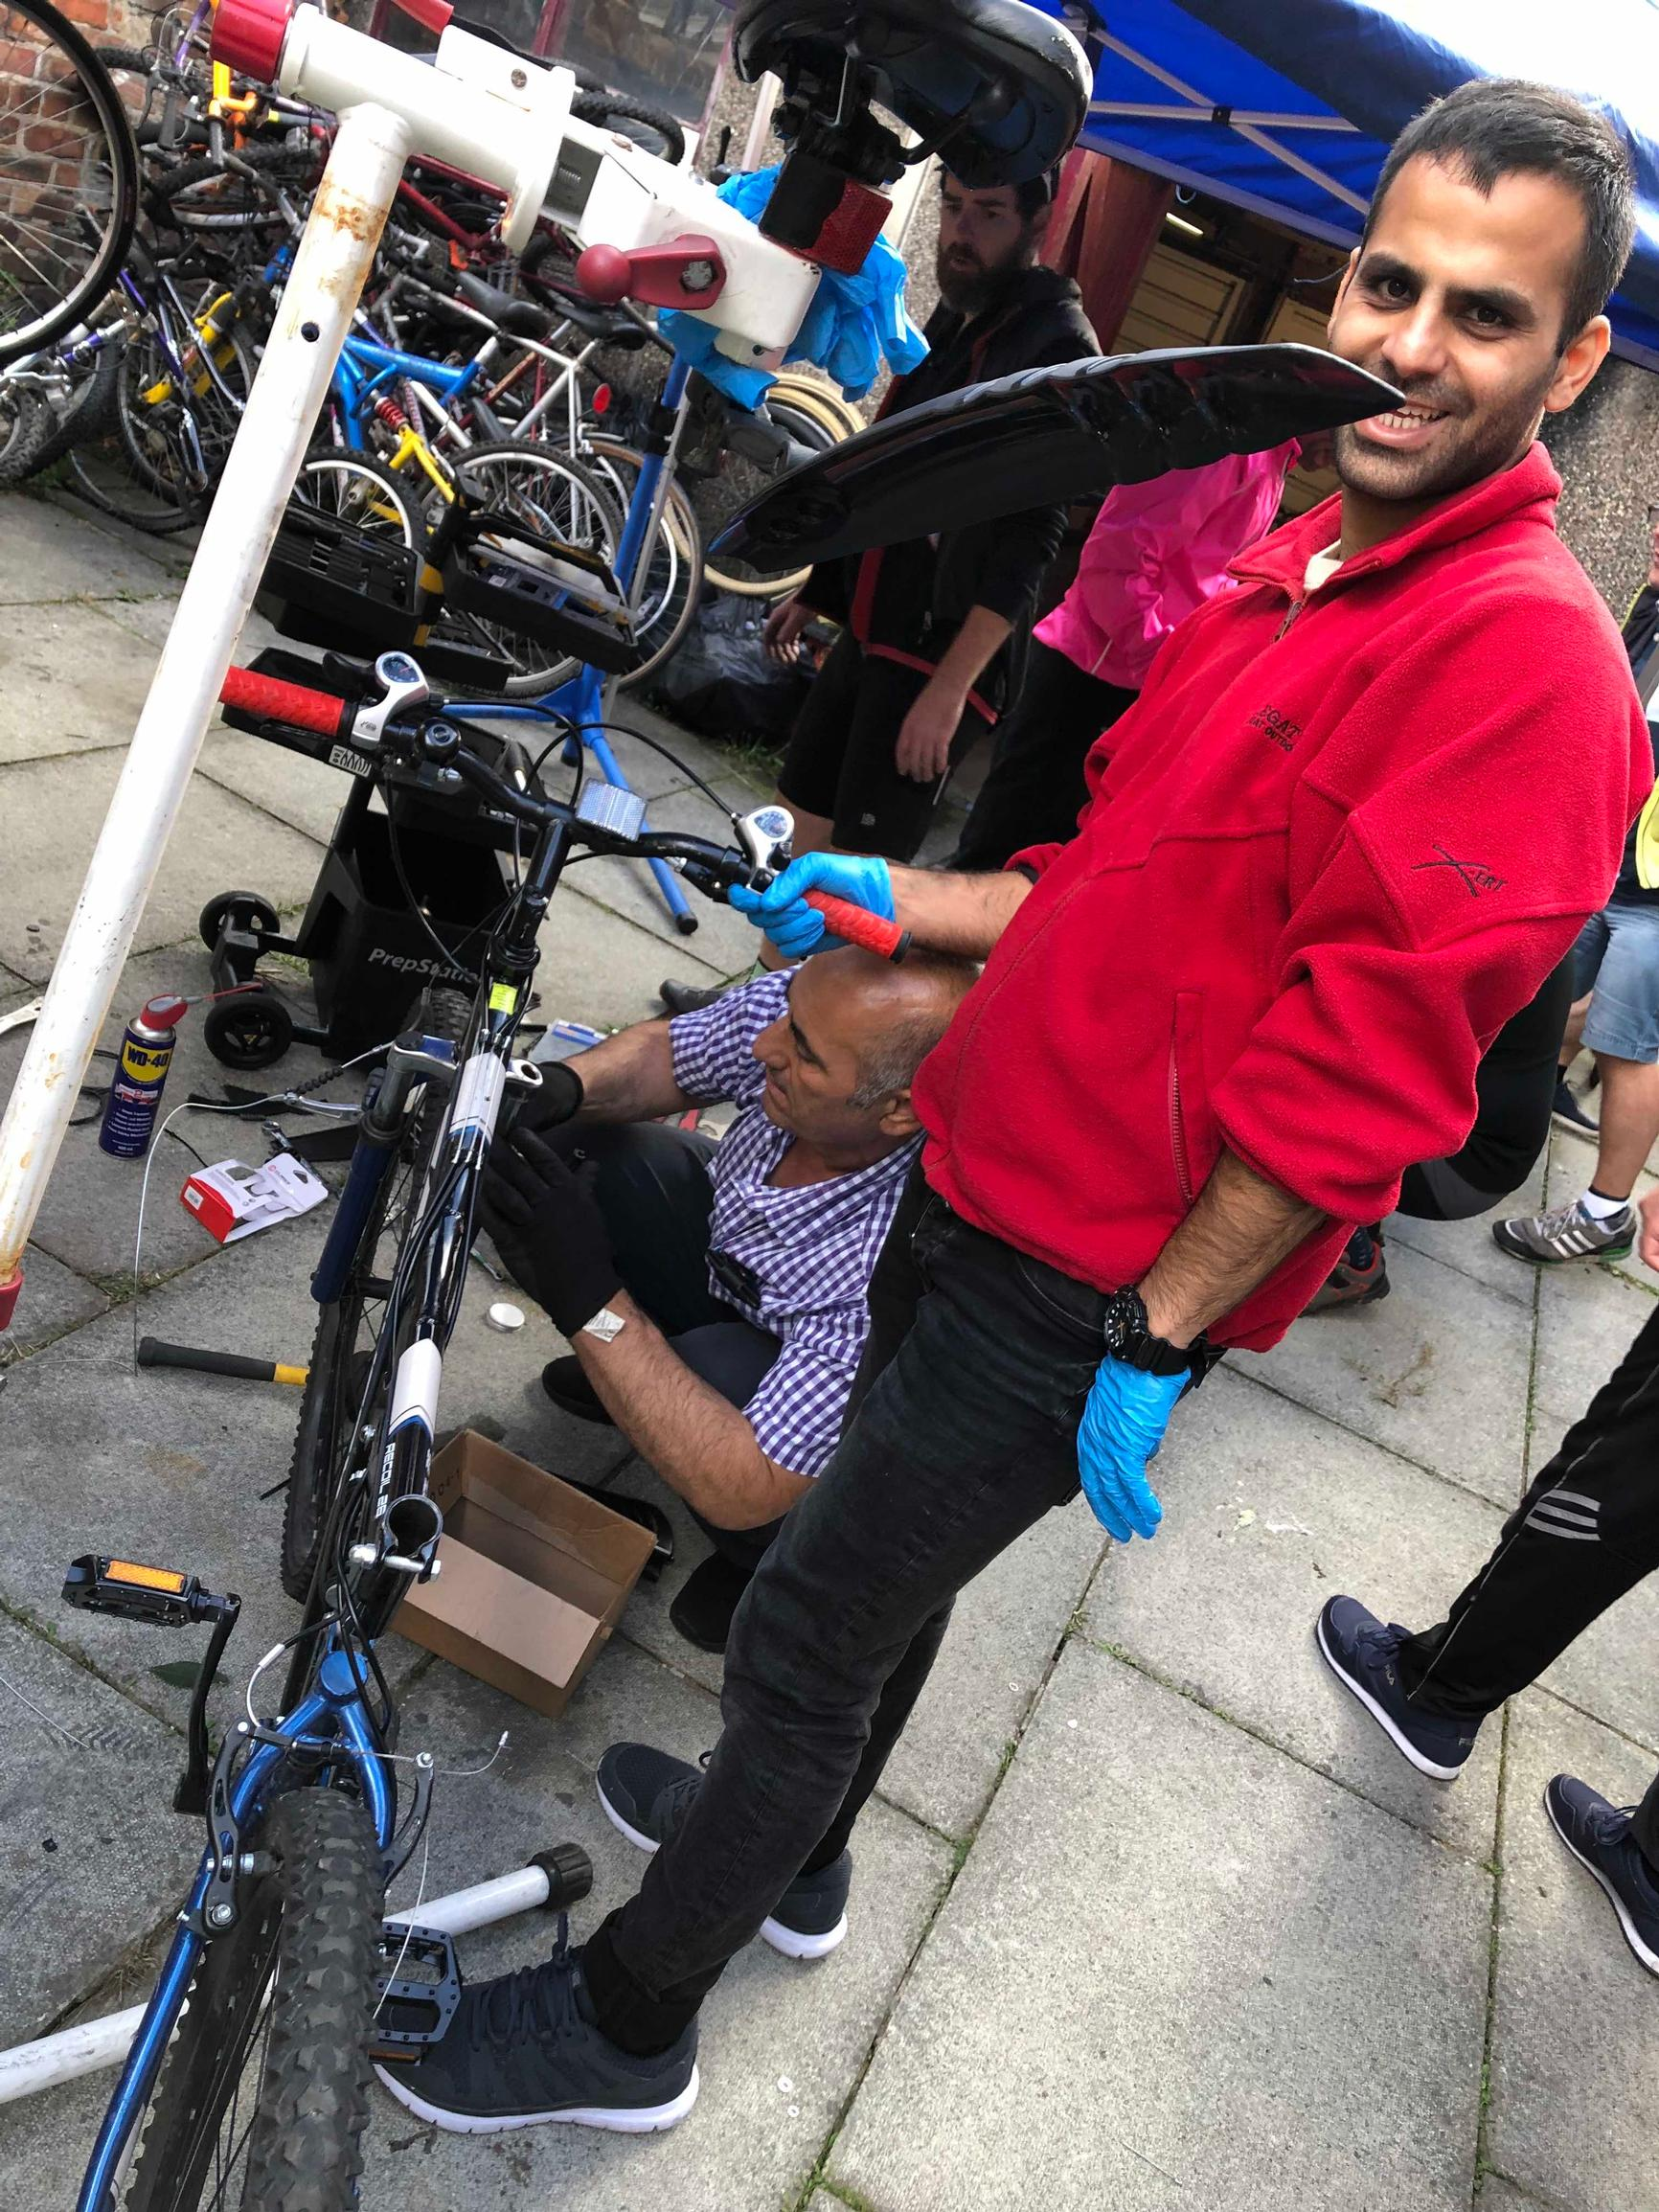 With BikeShed`s help, asylum seekers, refugees and recovering addicts get used bikes, which they are shown how to renovate